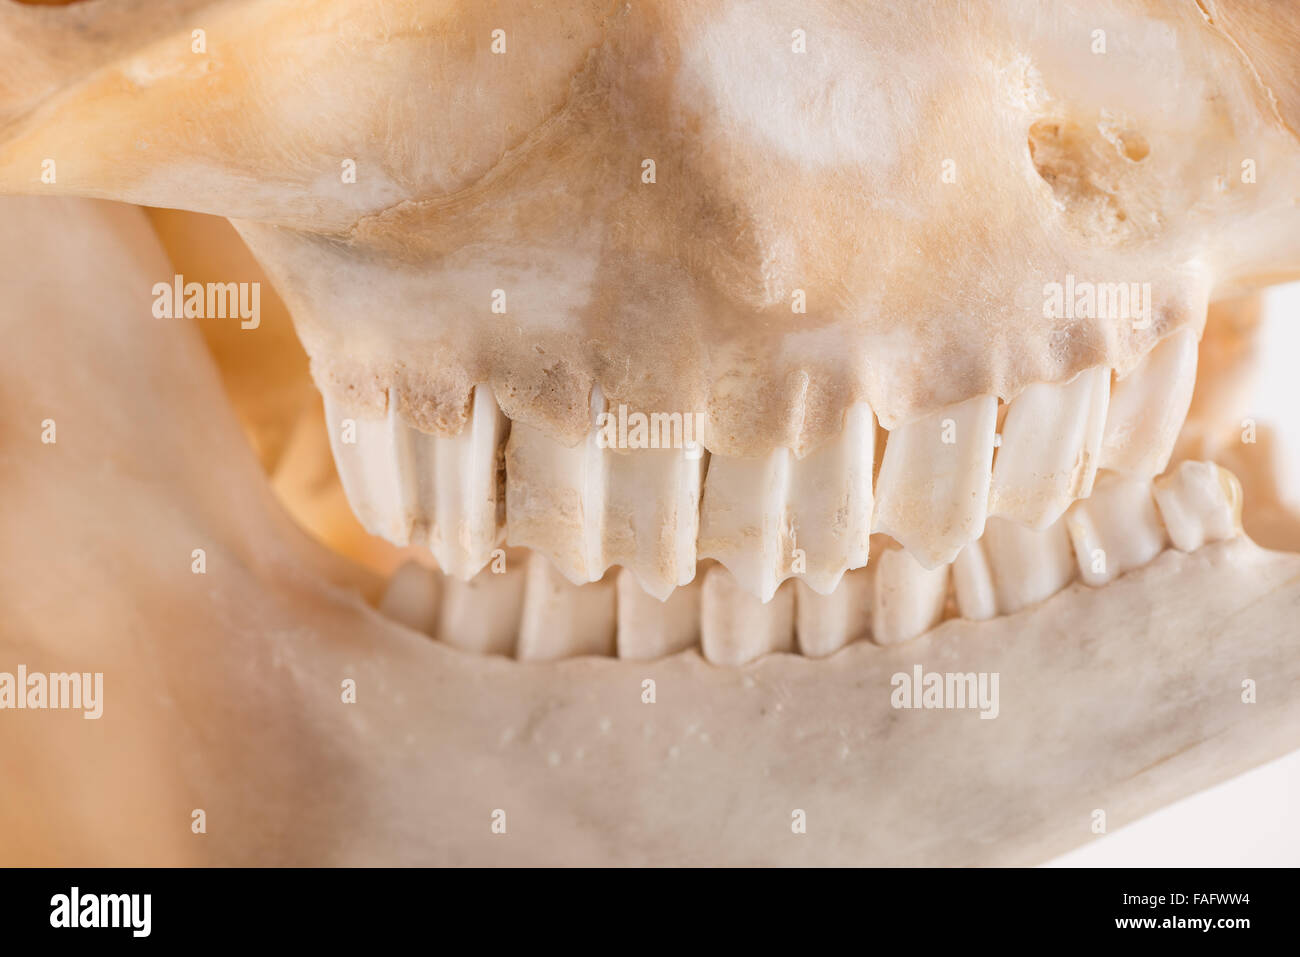 side grin of goat head skull skeleton molar teeth side profile large powerful and scary upsetting premolar and molars - Stock Image